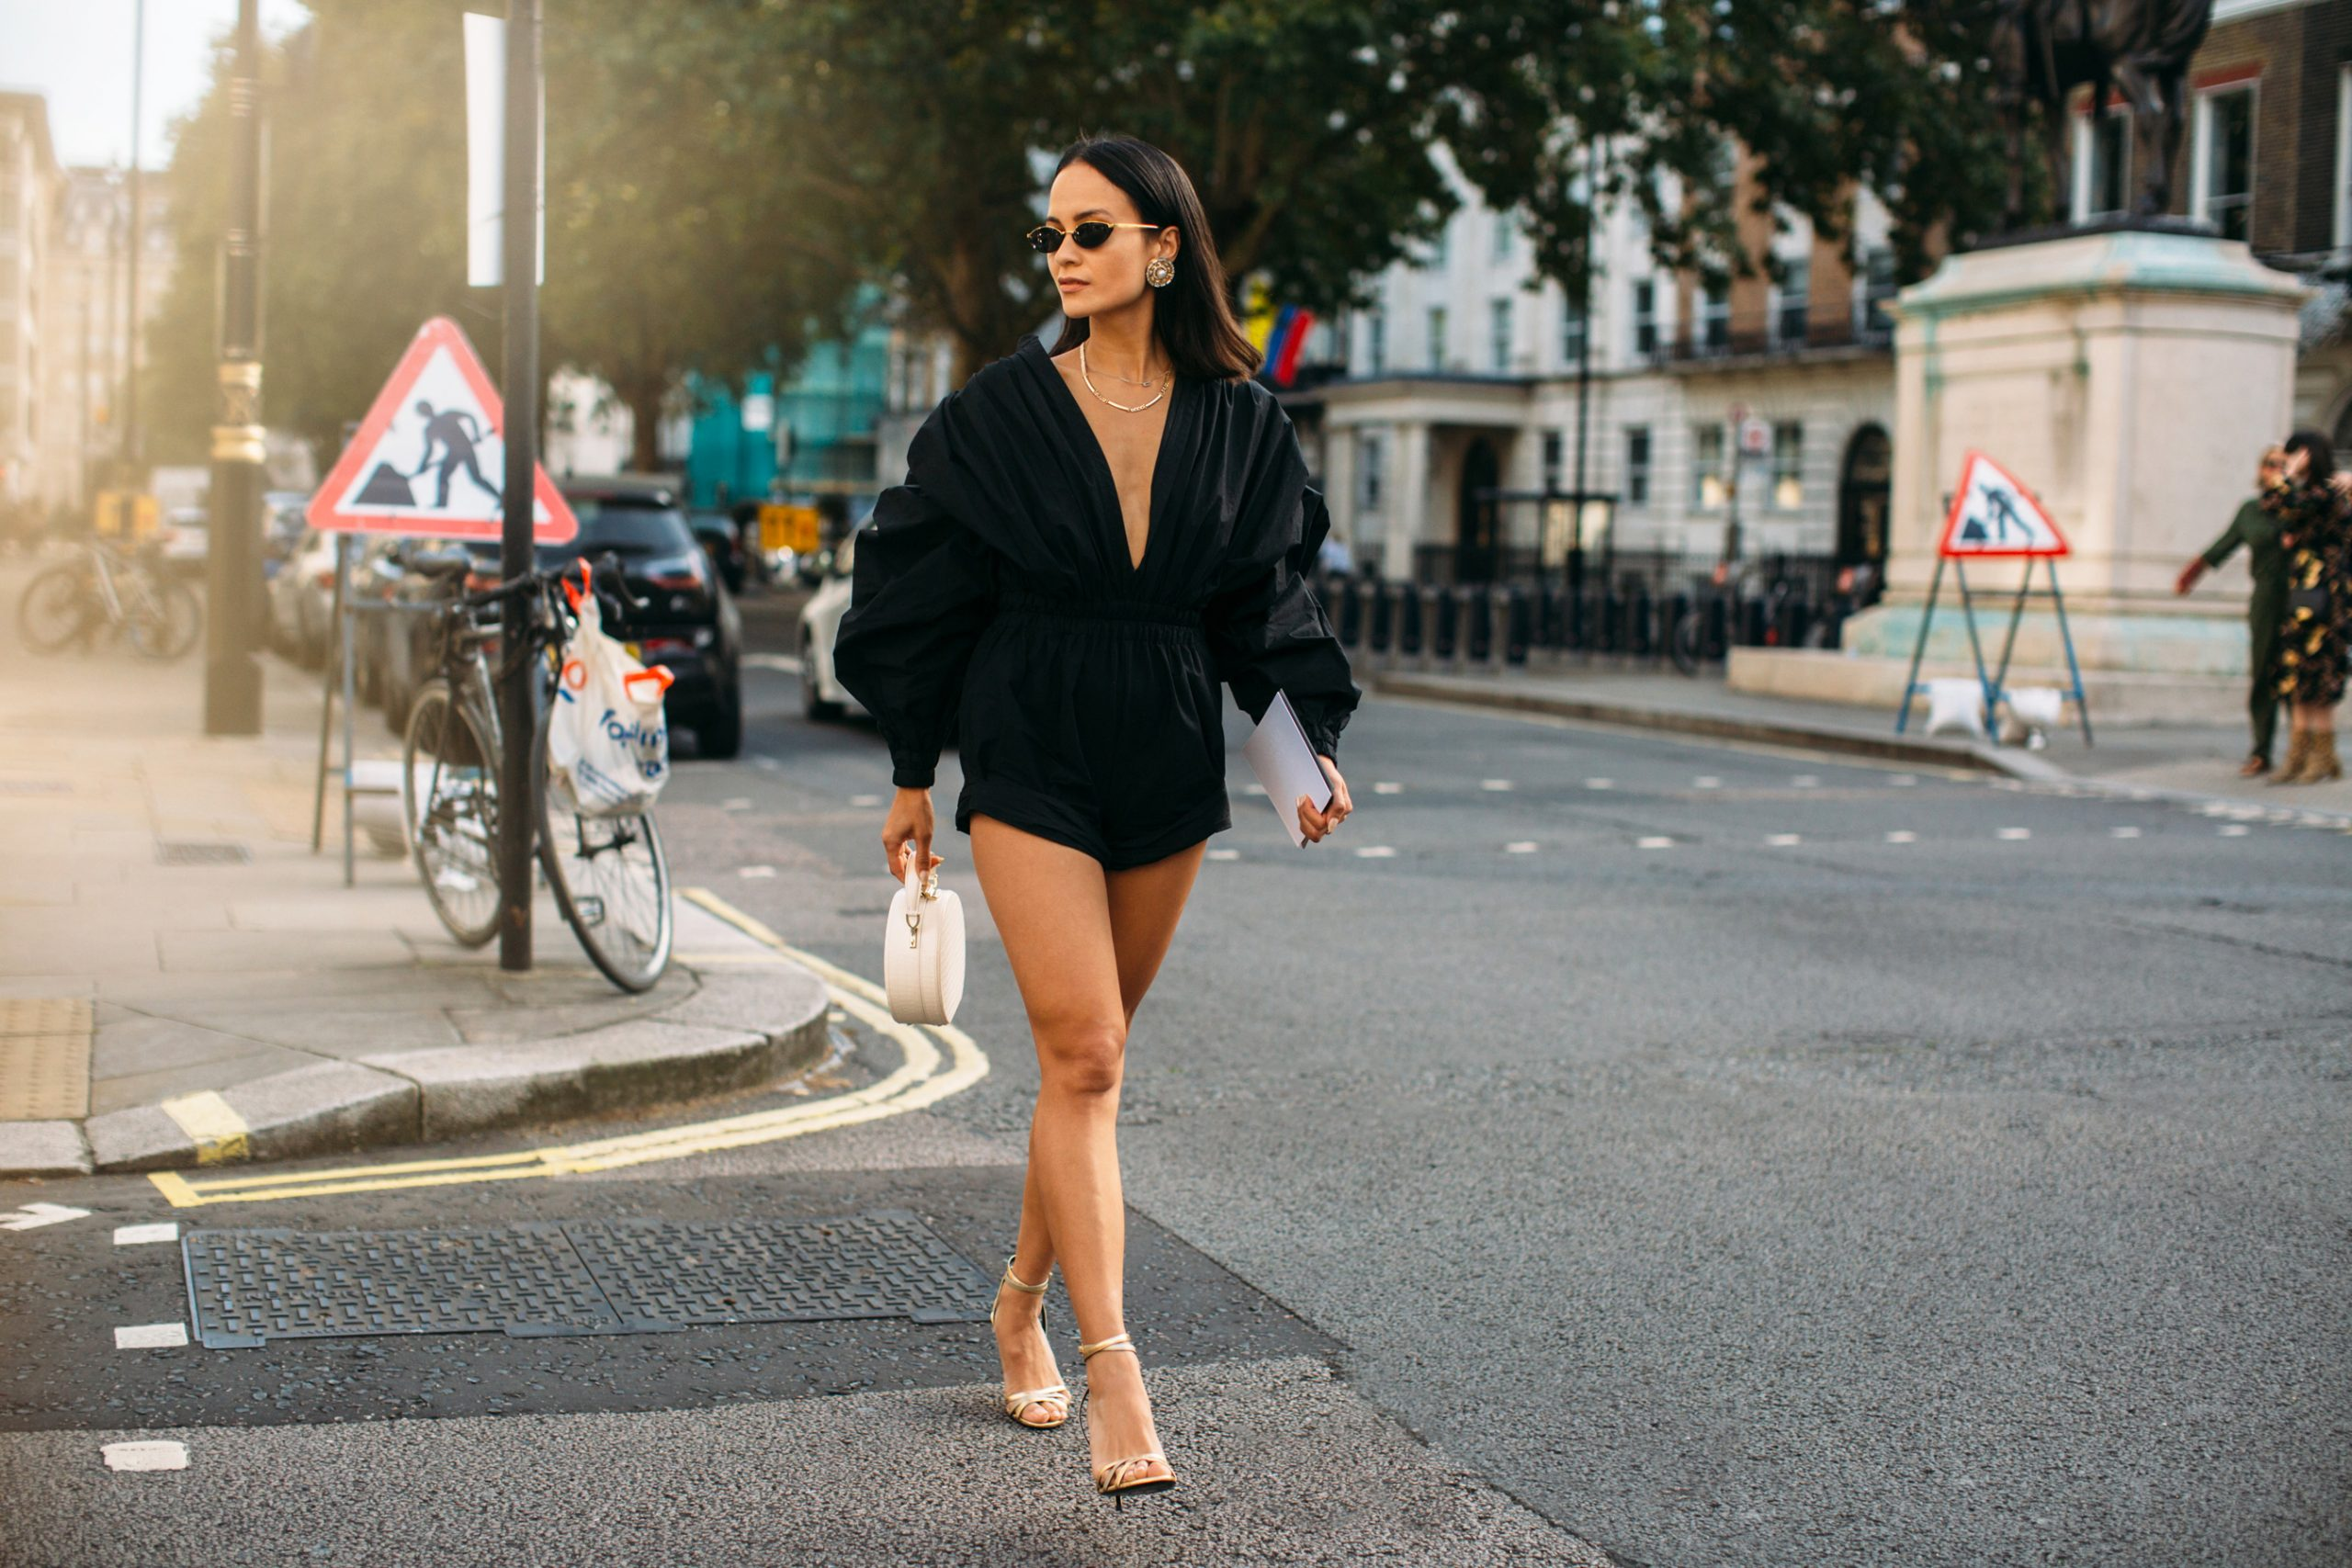 Top 50 Street Style Photos of 2019